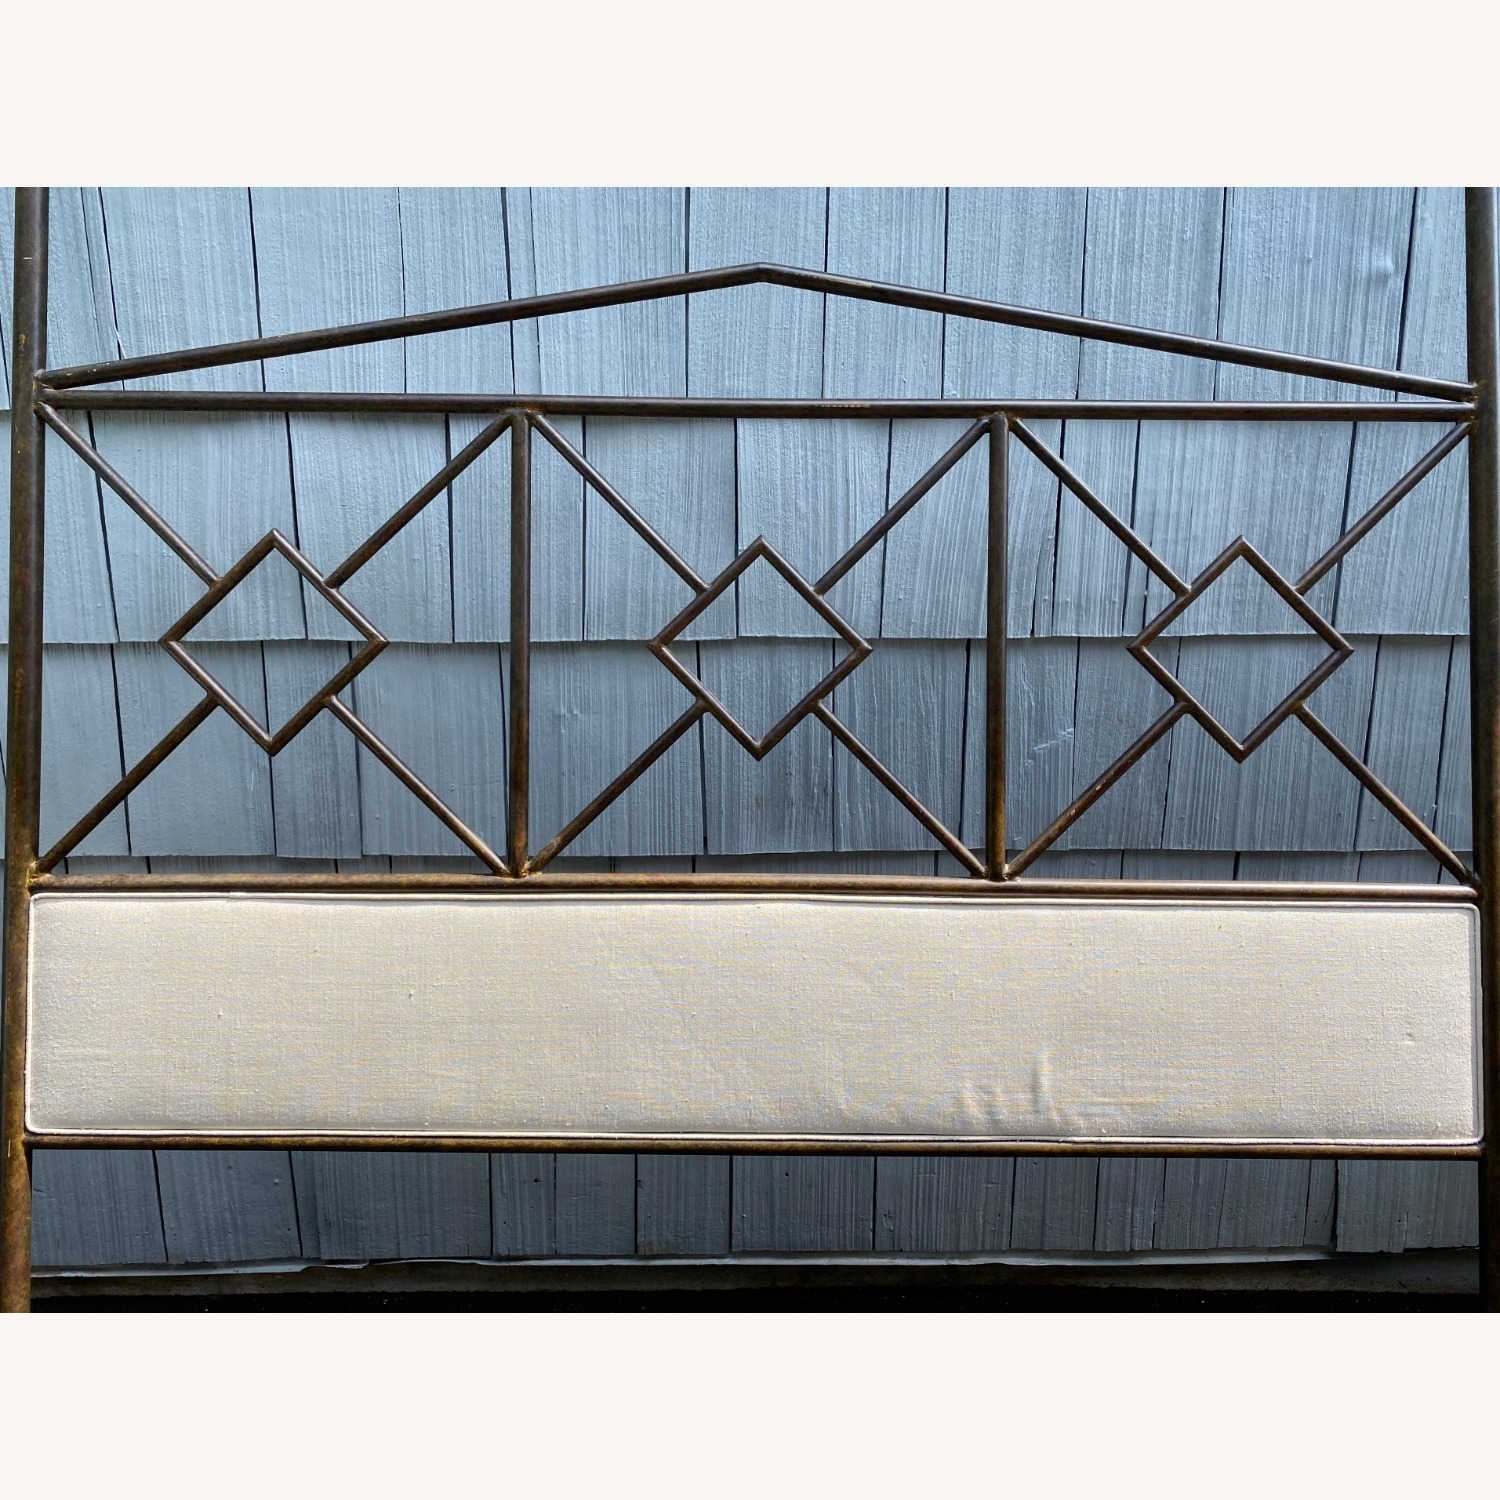 King Sized Canopy Iron Bed Frame - image-7